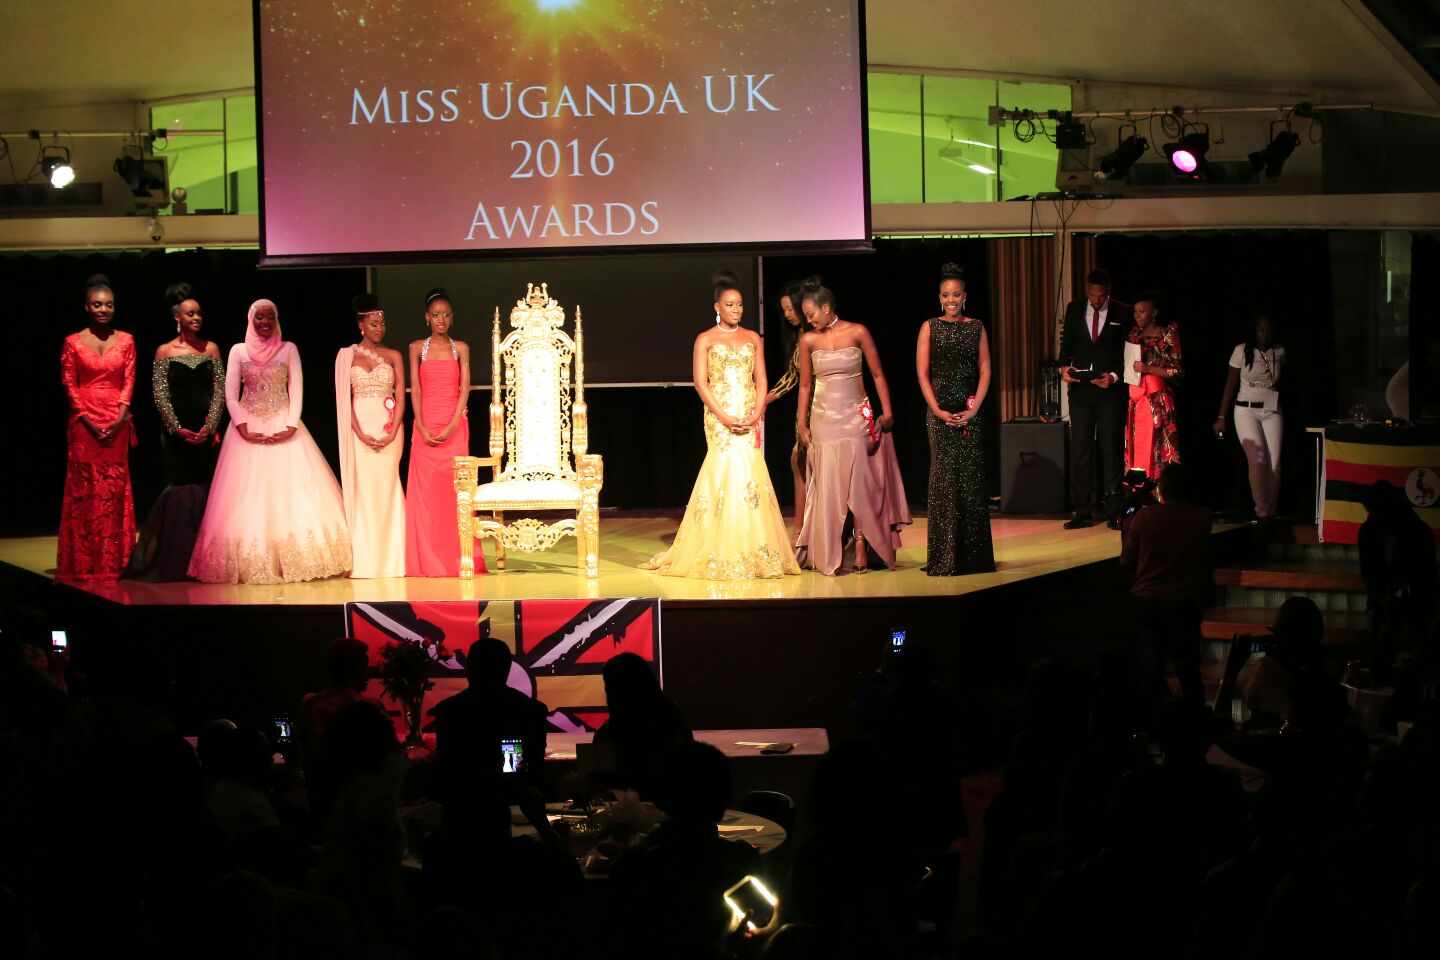 MISS UGANDA - UK 2016 AWARDS